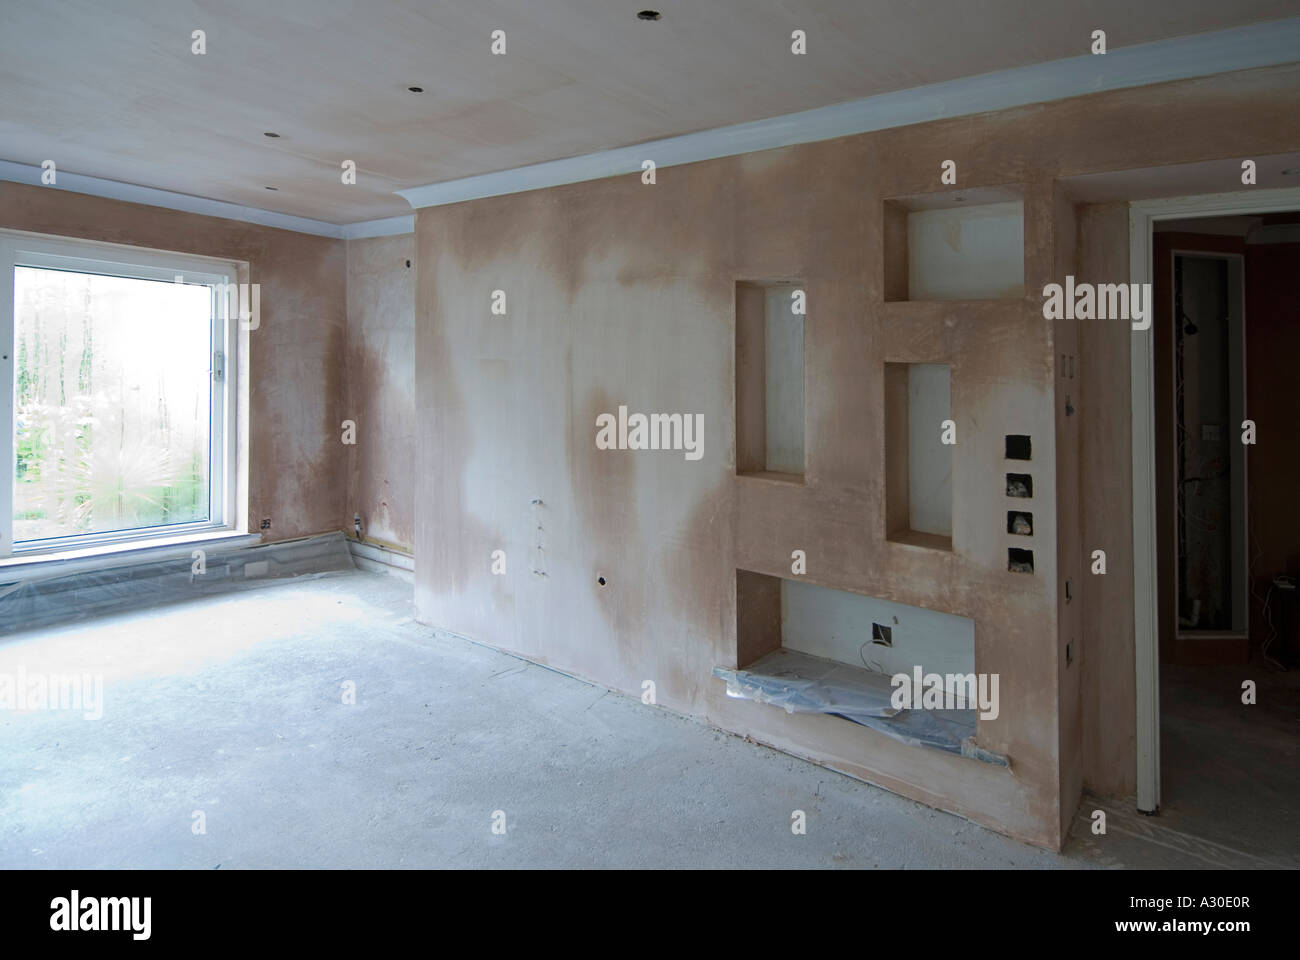 Makeover lounge  new lighting  new recesses  wet pink plaster drying out  before decorating  for decorated view see Alamy A3WTPX Makeover lounge  new lighting  new recesses  wet pink plaster  . Lounge Lighting. Home Design Ideas